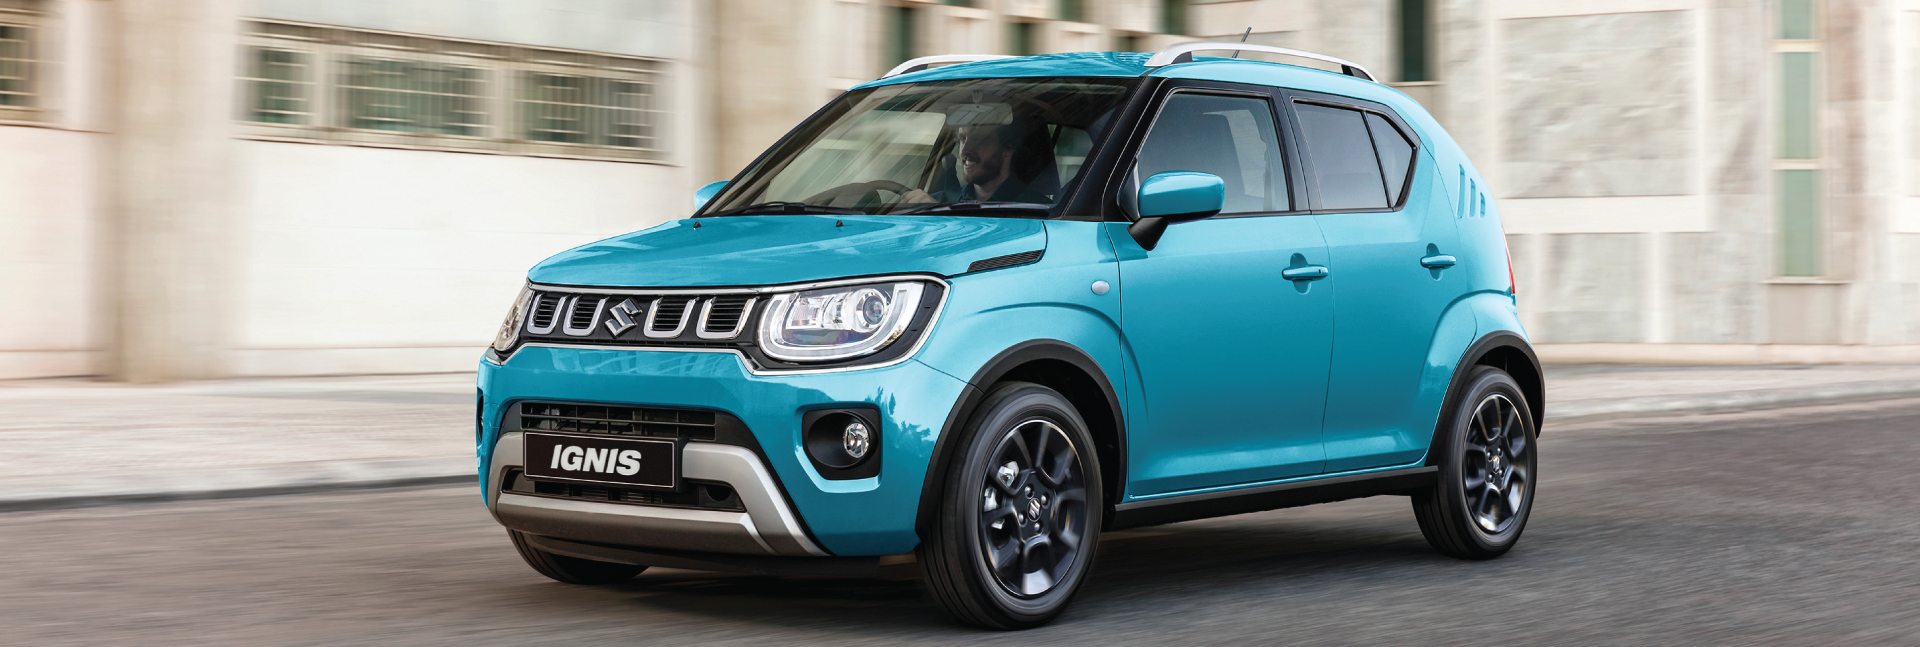 Blue-Ignis-on-the-road